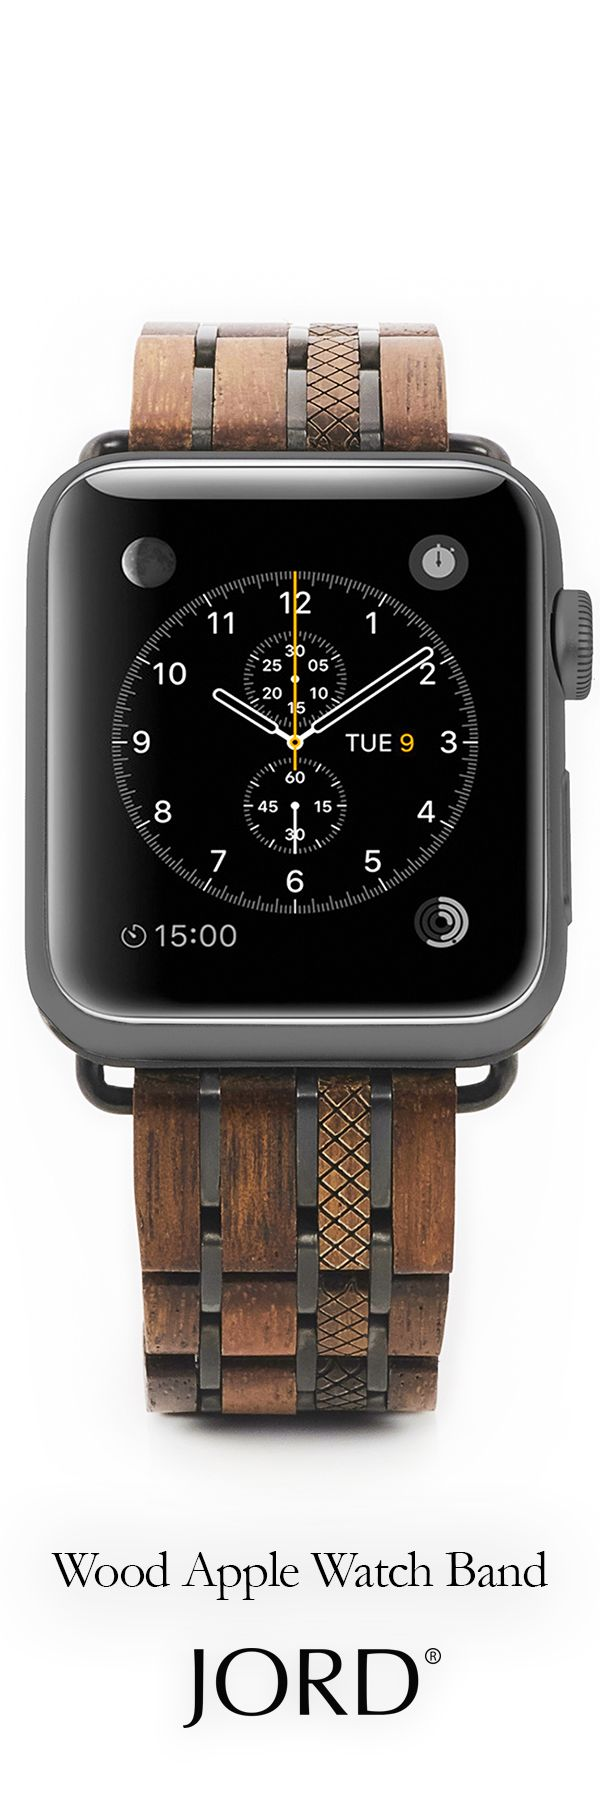 Pair your new - with our natural! JORD's *new release* wood band comes with a 38mm or 42mm adapter and a tool for changing bands out! Find your favorite at jordwatches.com - sizing and free shipping available!